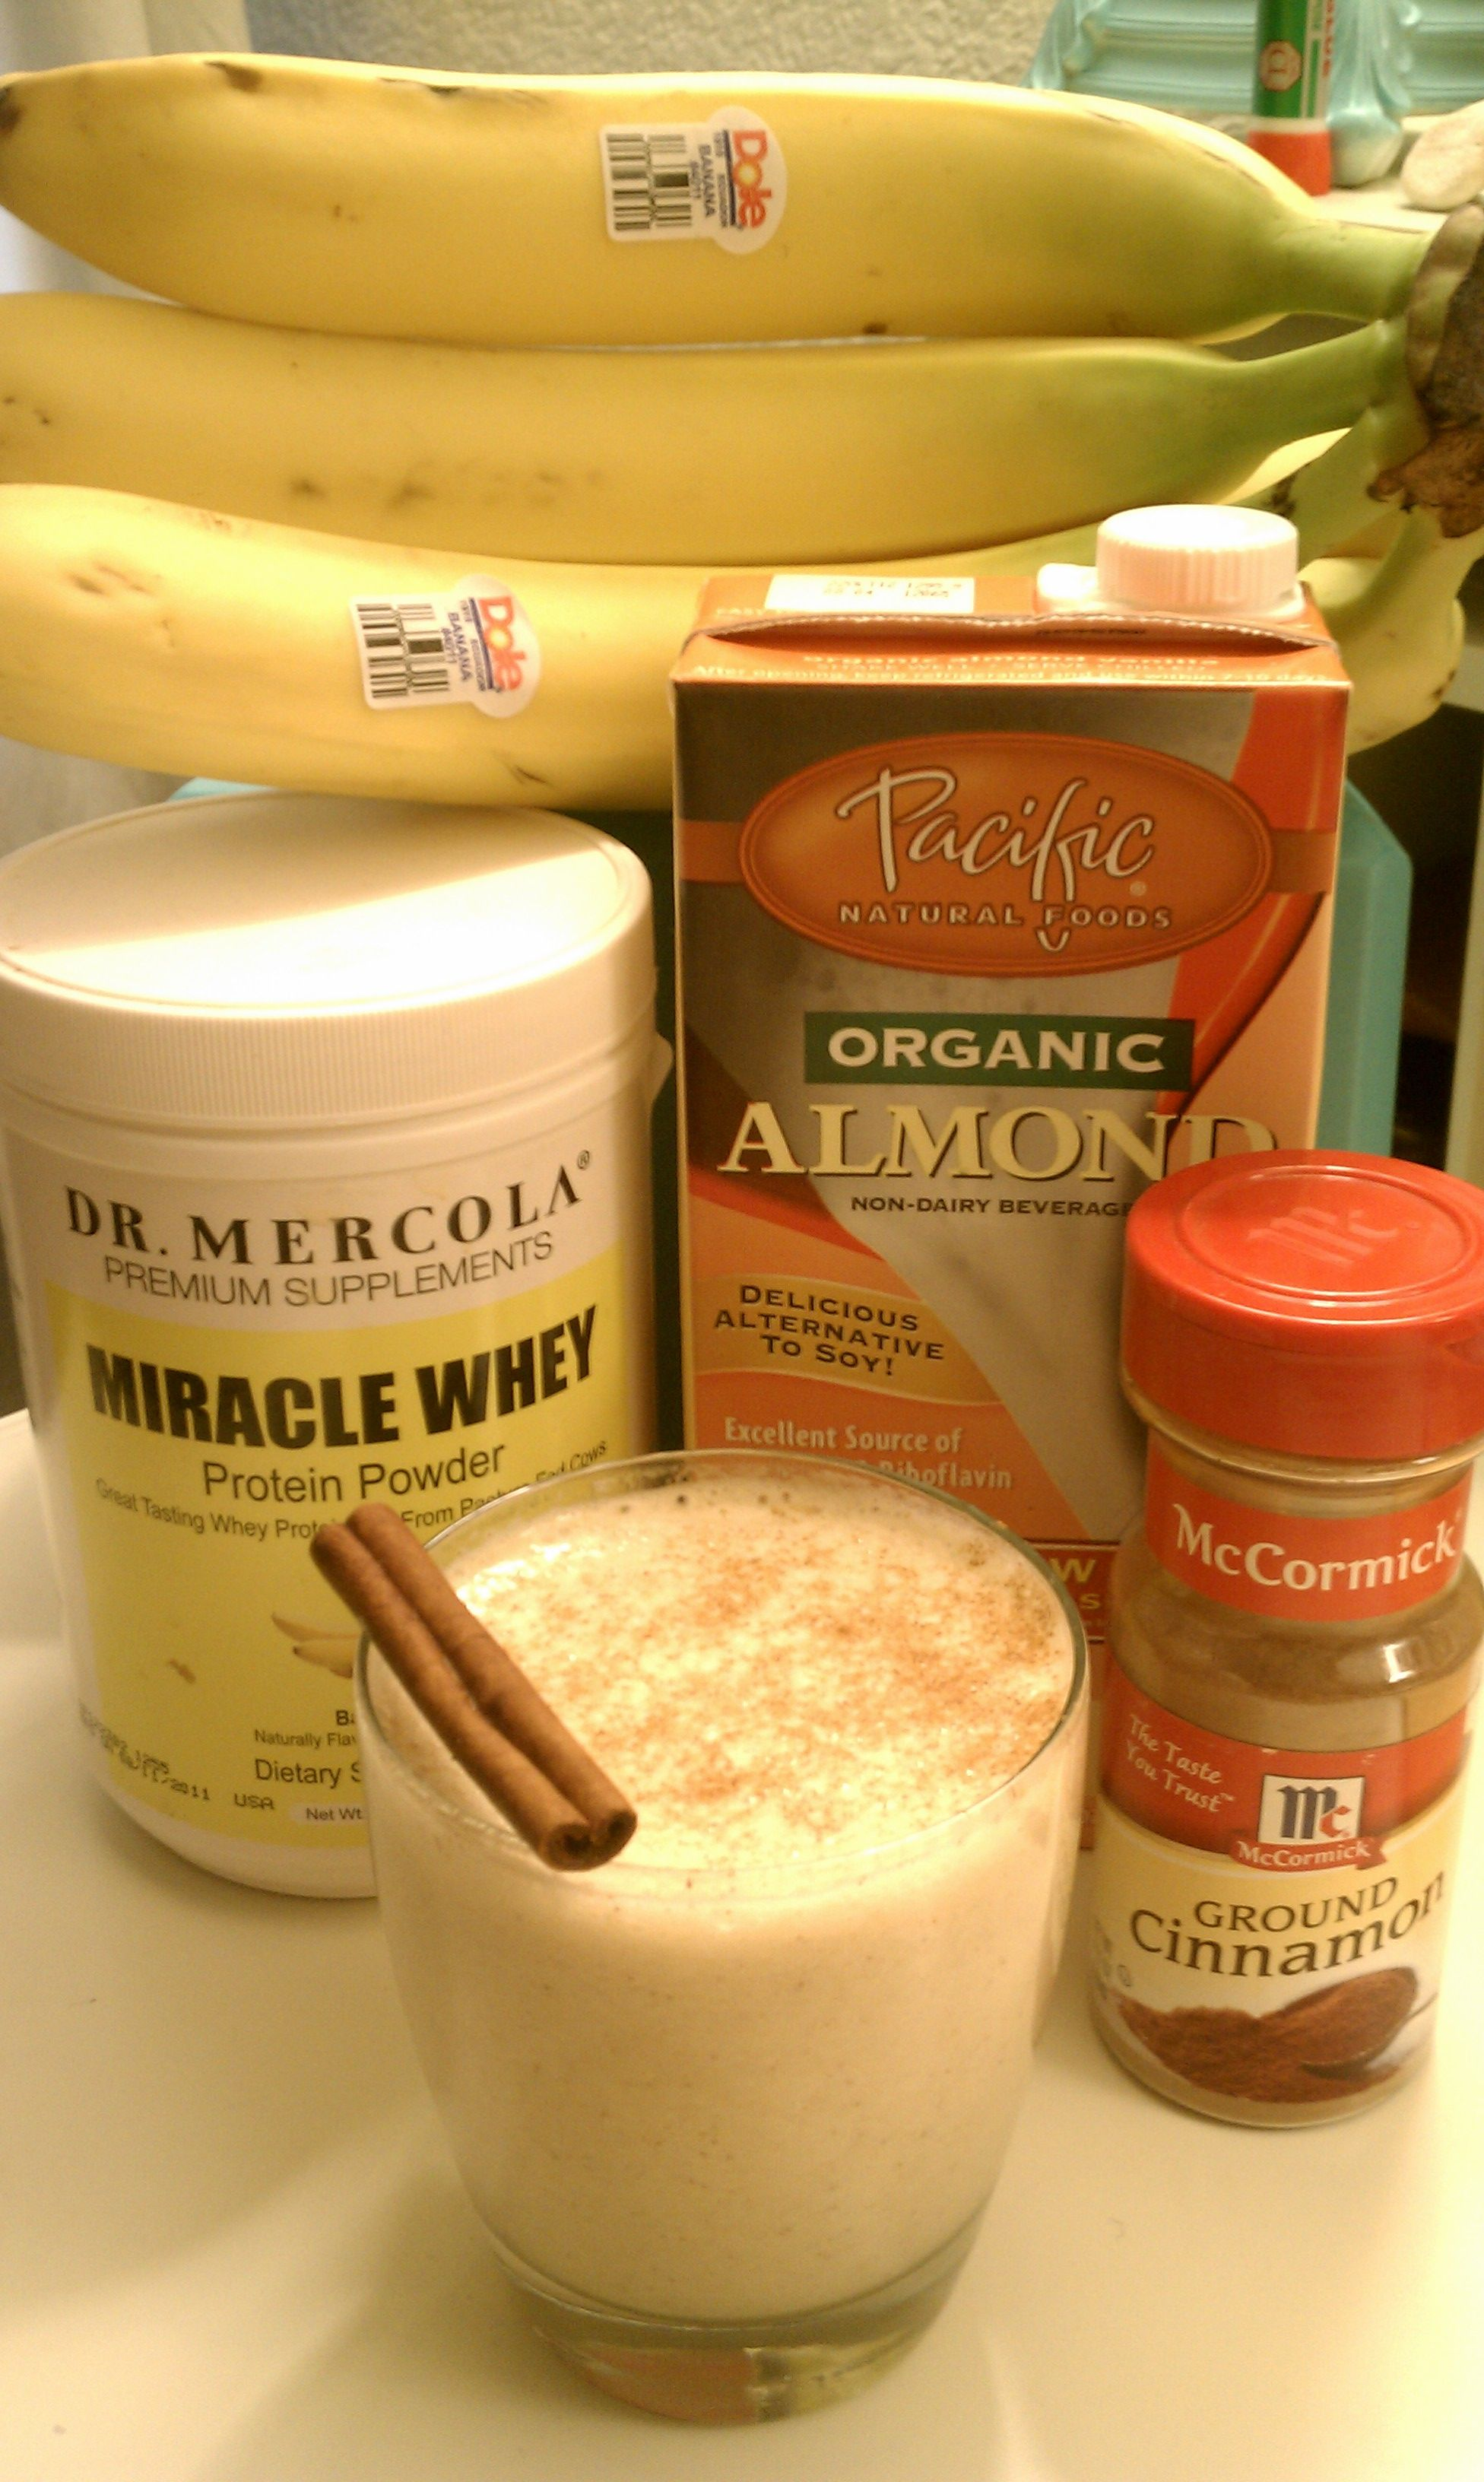 Protien Smoothie Seriously Delicious 1 Banana 1 Cup Almond Milk 2 Scoops Protein Powder And Protein Shake Recipes Easy Protein Smoothies Protien Snacks